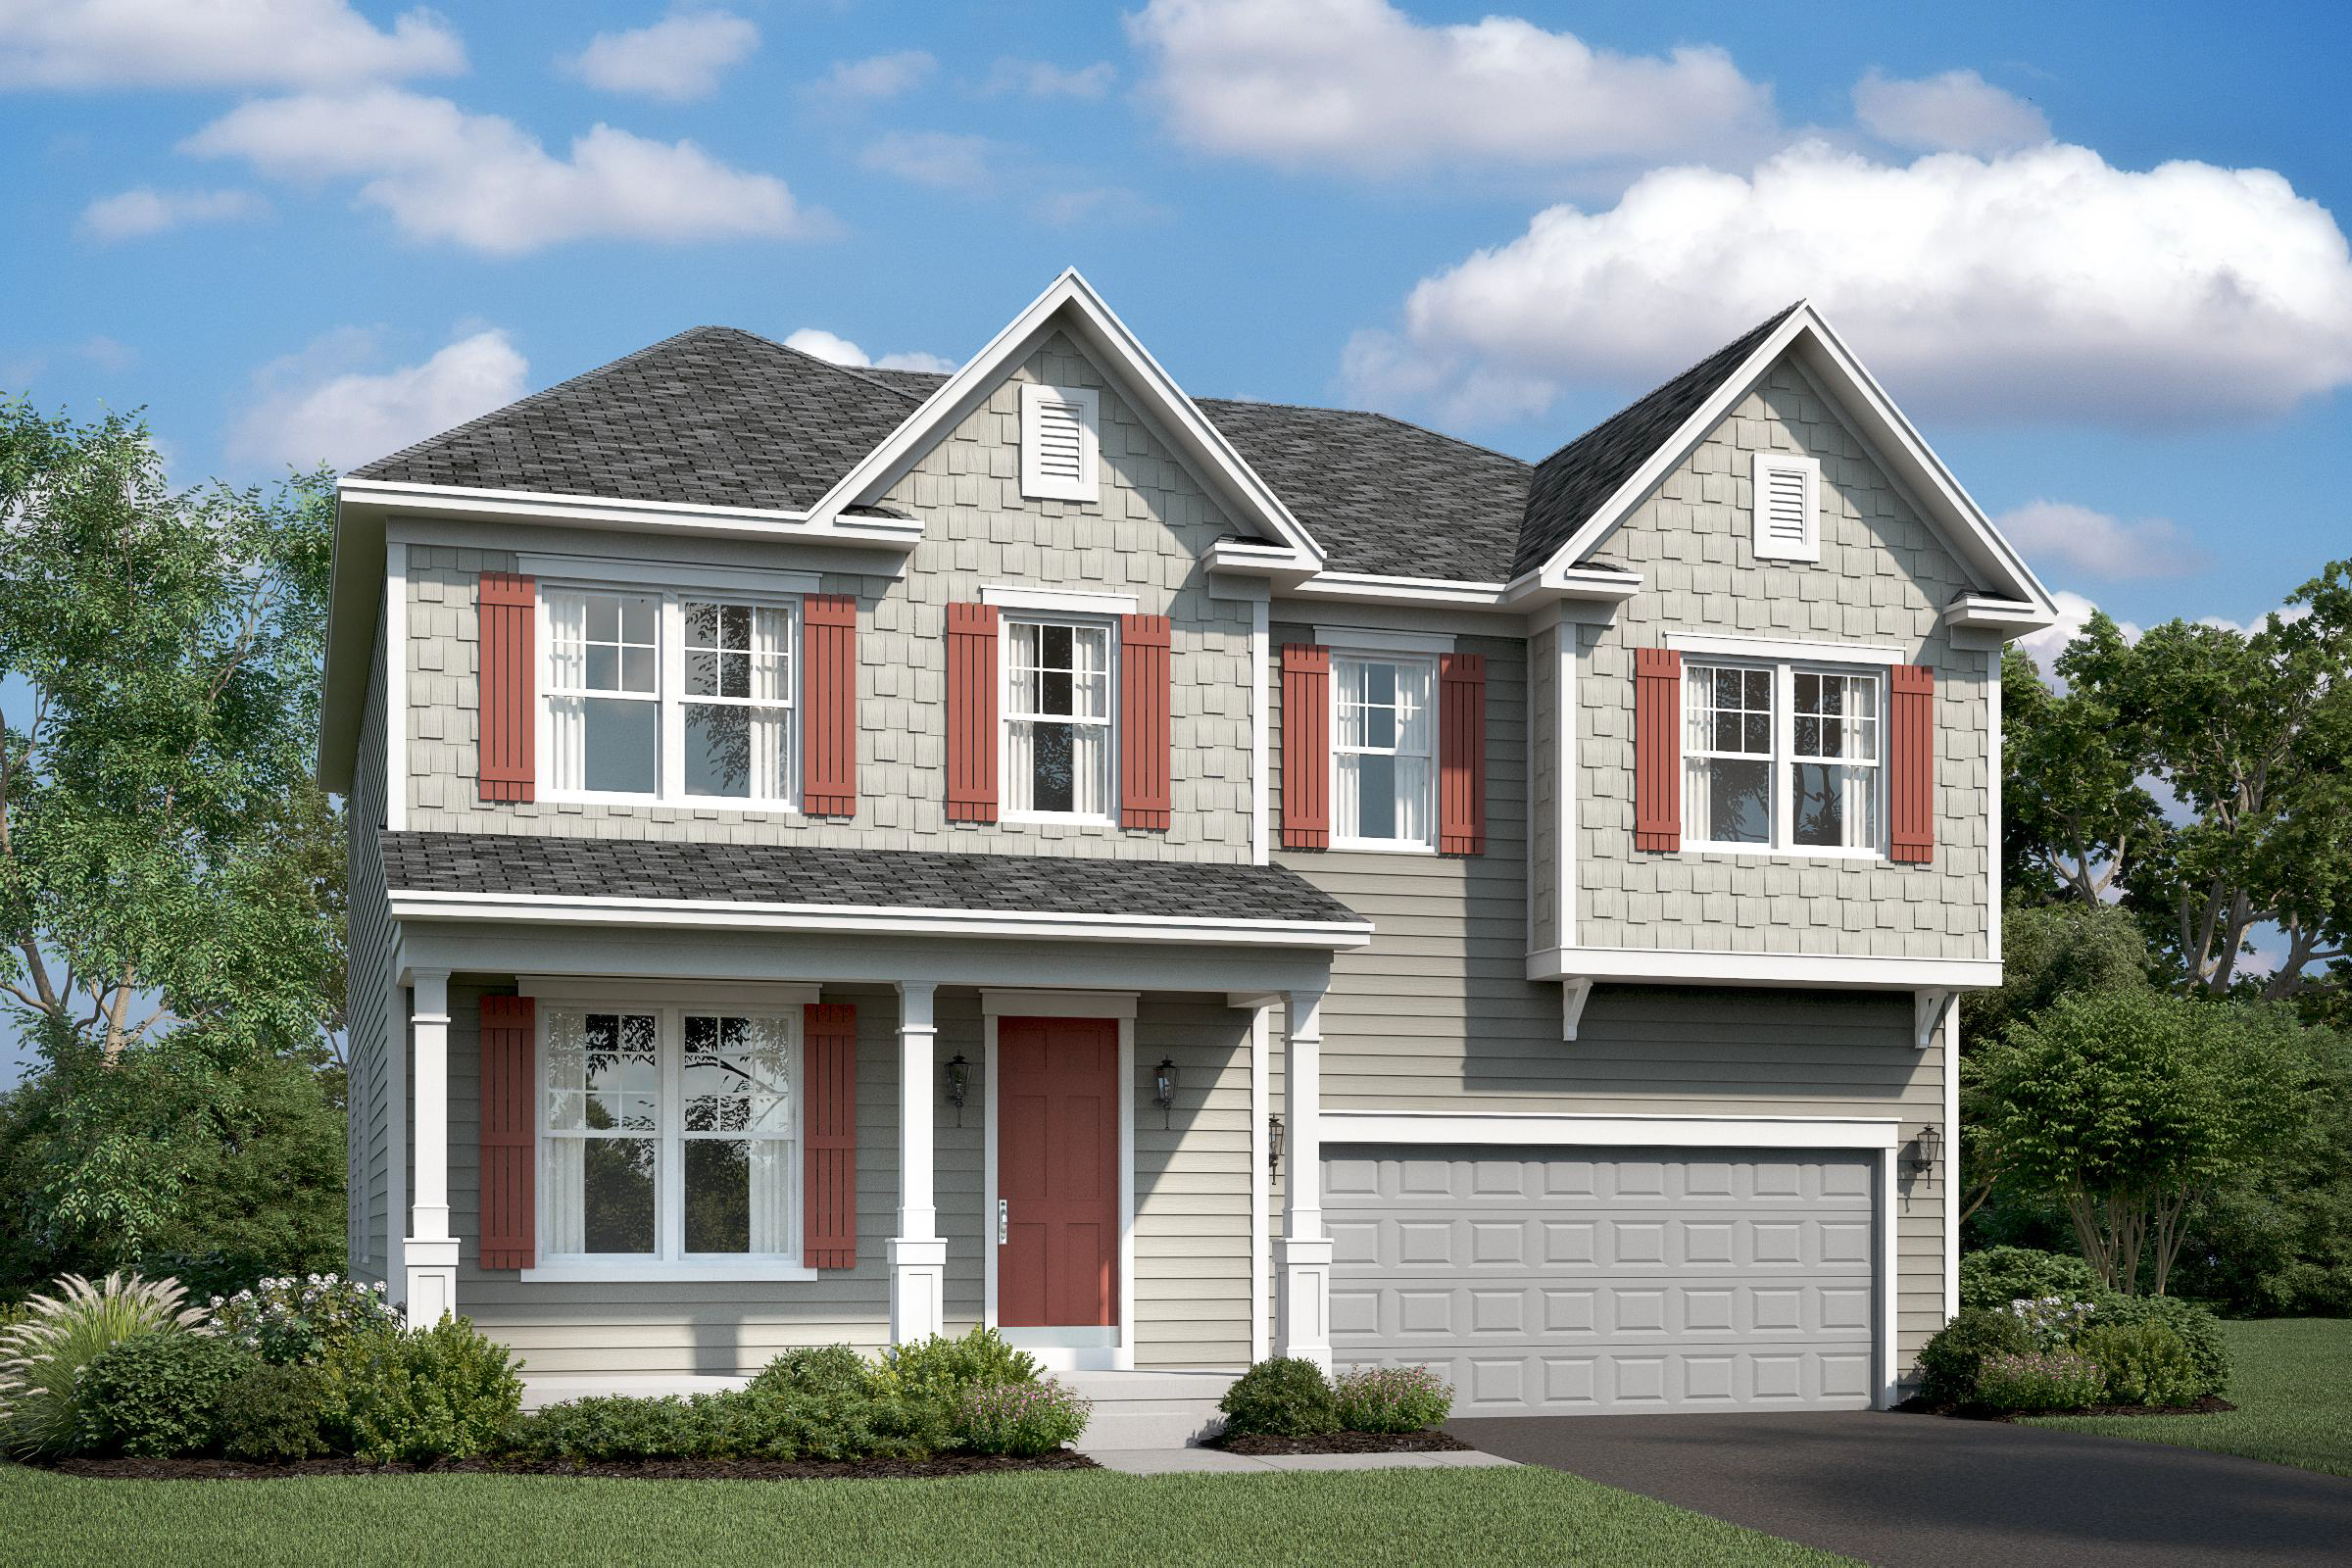 tomasen fs new homes at leeland station in virginia